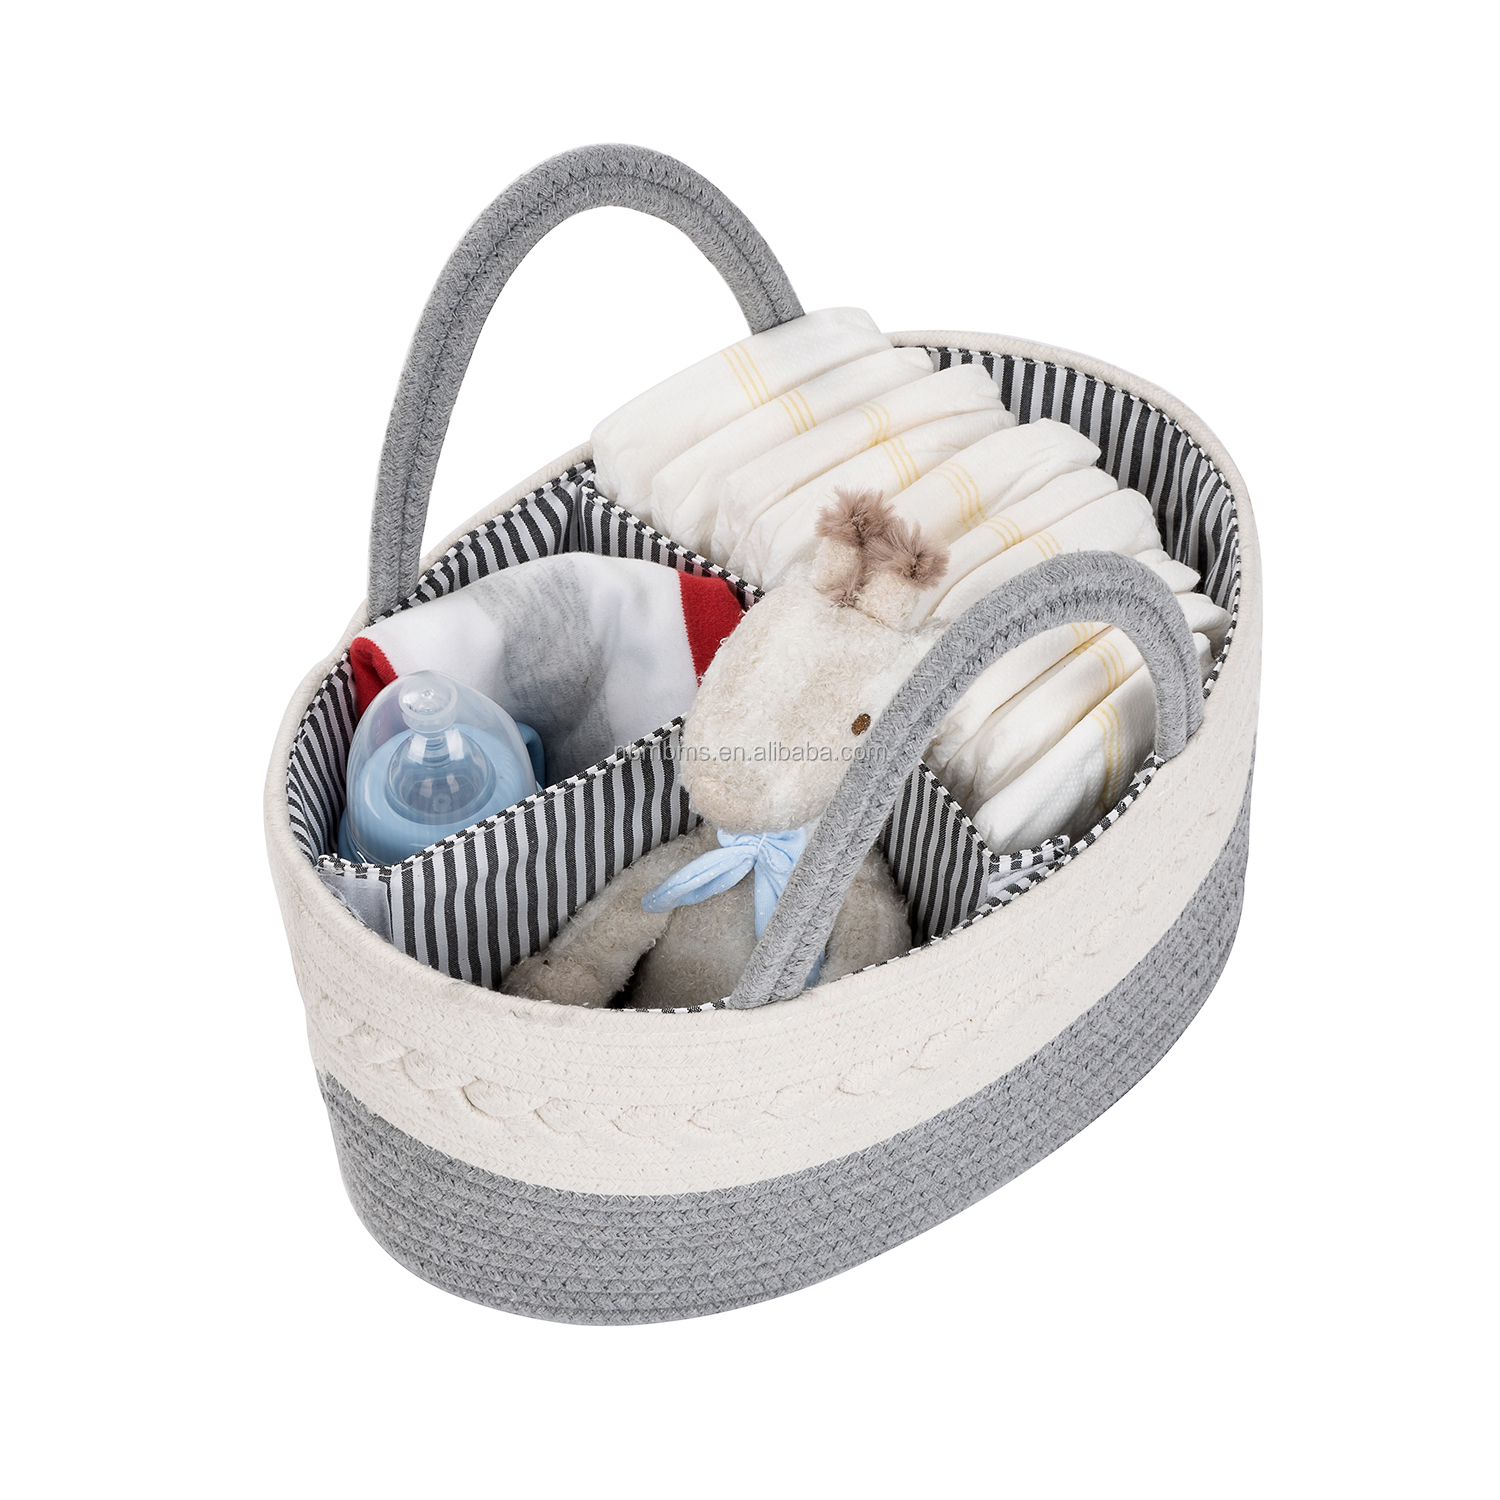 QJMAX Collapsible Nursery Storage Bin and Baby Diaper Caddy Bag Cotton Rope Diaper Caddy Organizer For Diapers and Baby Wipes